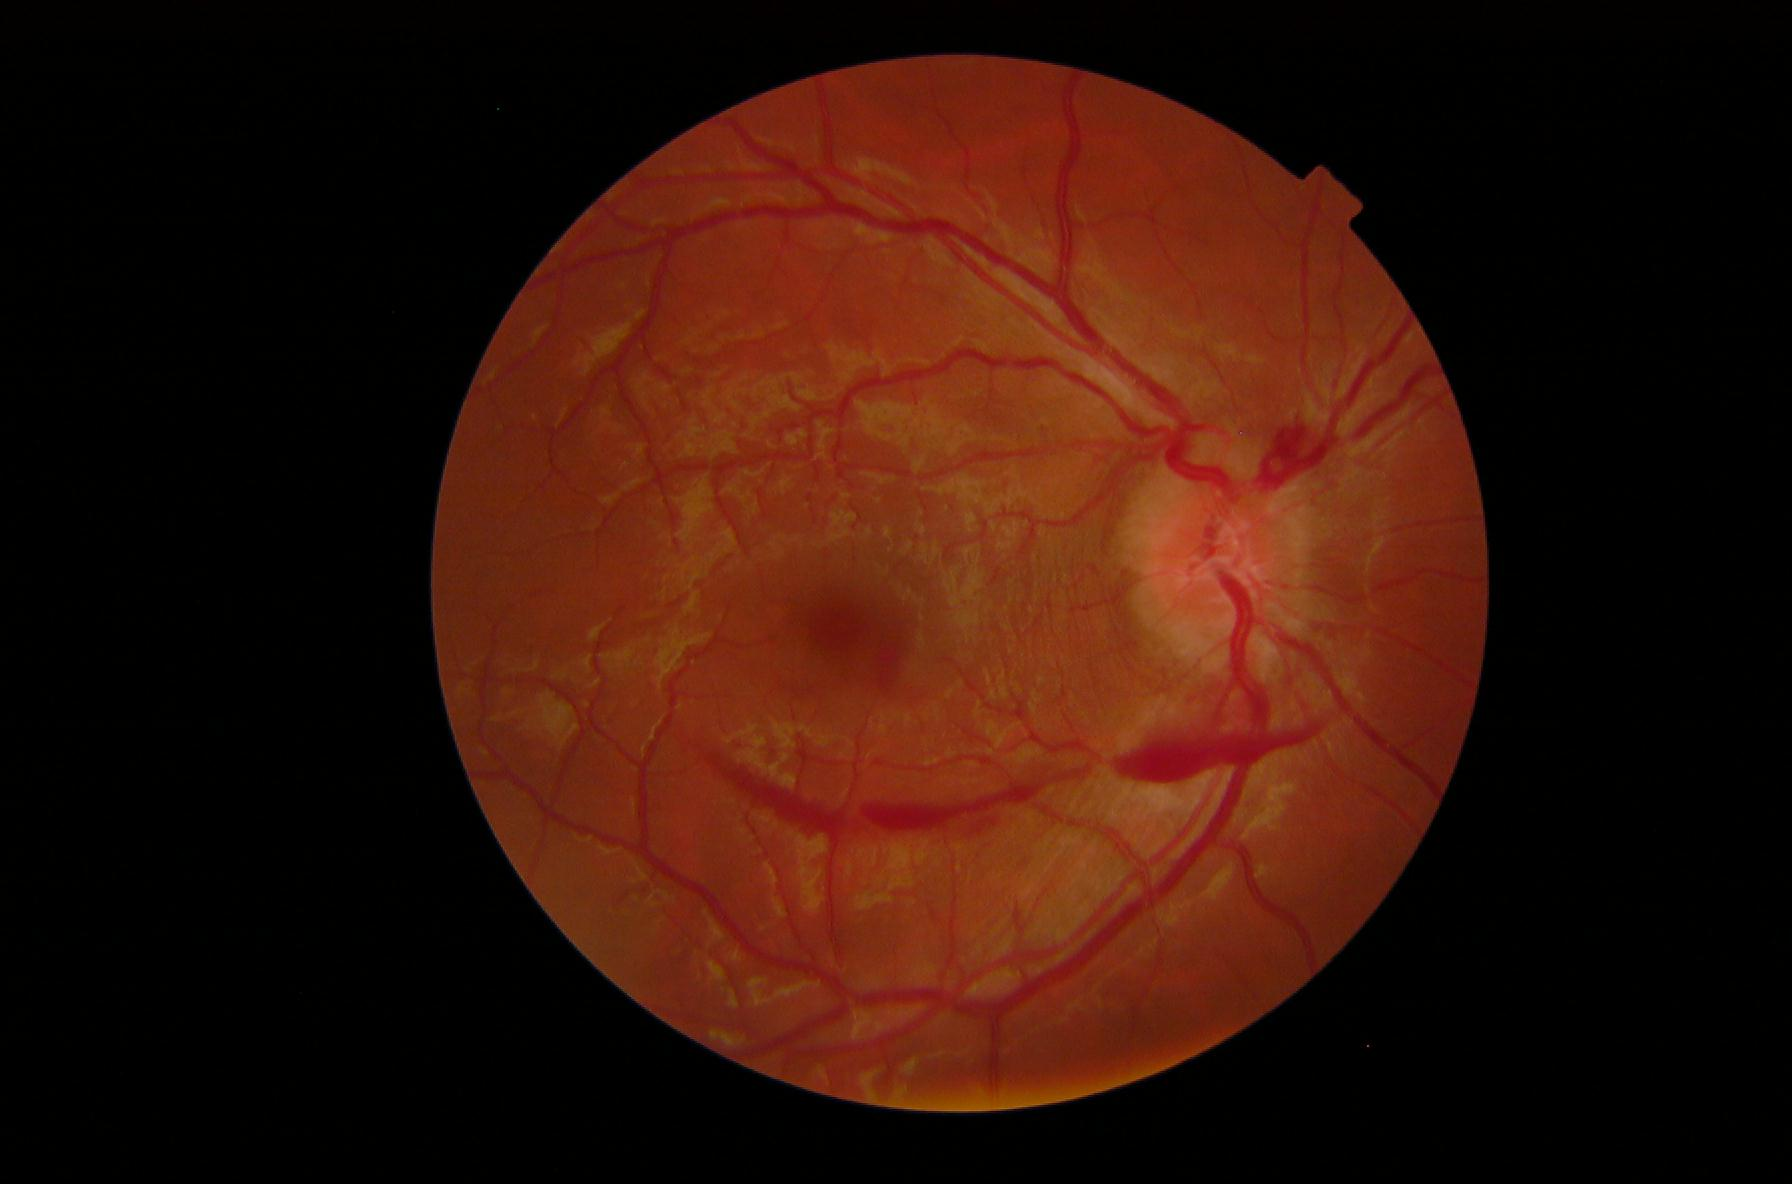 Cerebral Venous Sinus Thrombosis Signaled By Bilateral Optic Disc